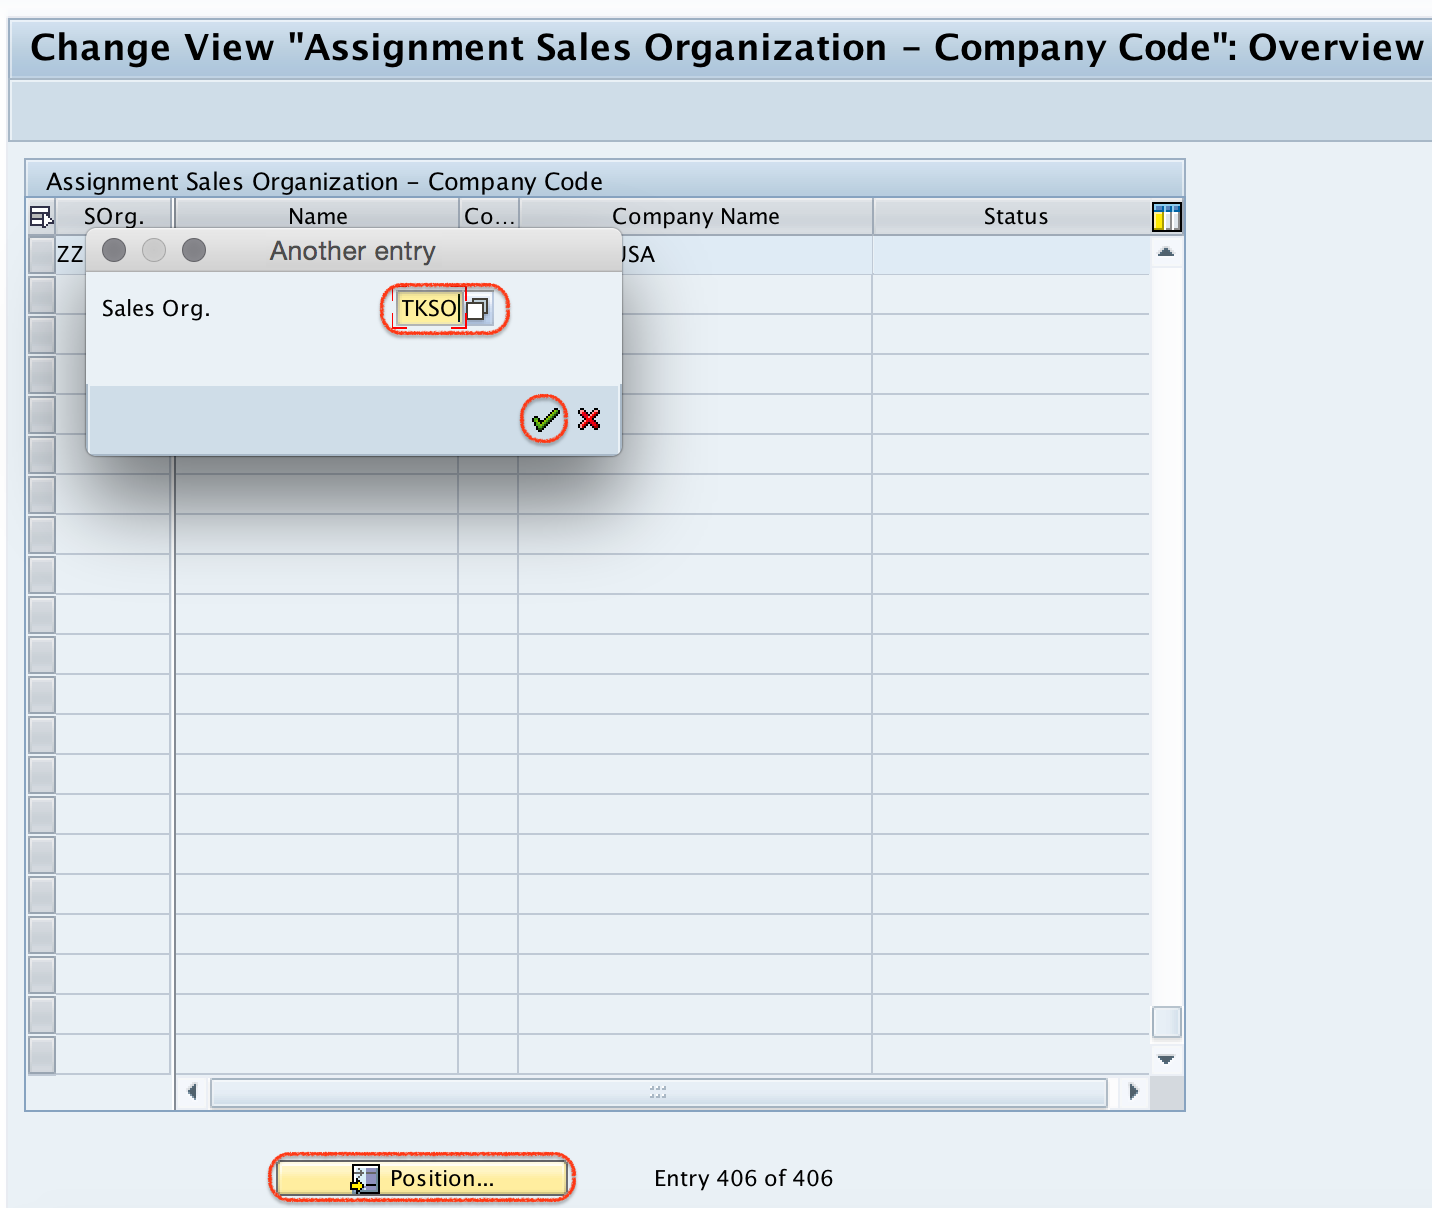 Assignment sales organization - company code